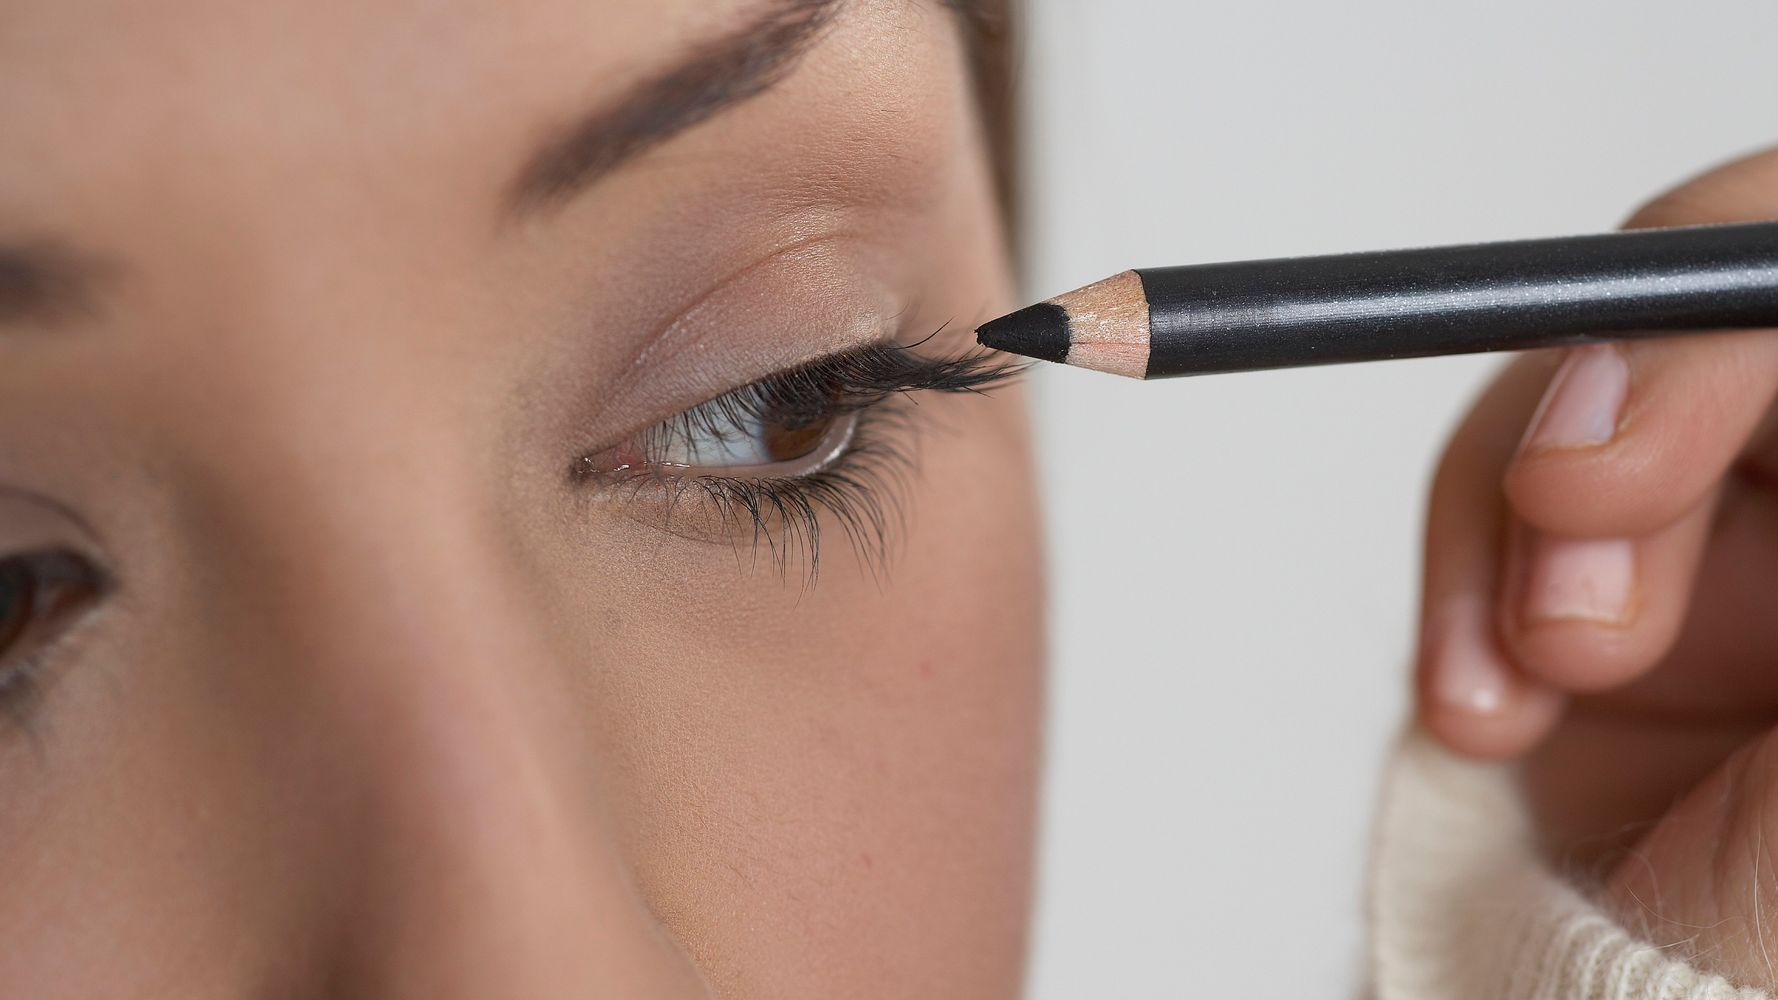 The Natural-Looking Makeup Trick That'll Make Your Eyes Pop